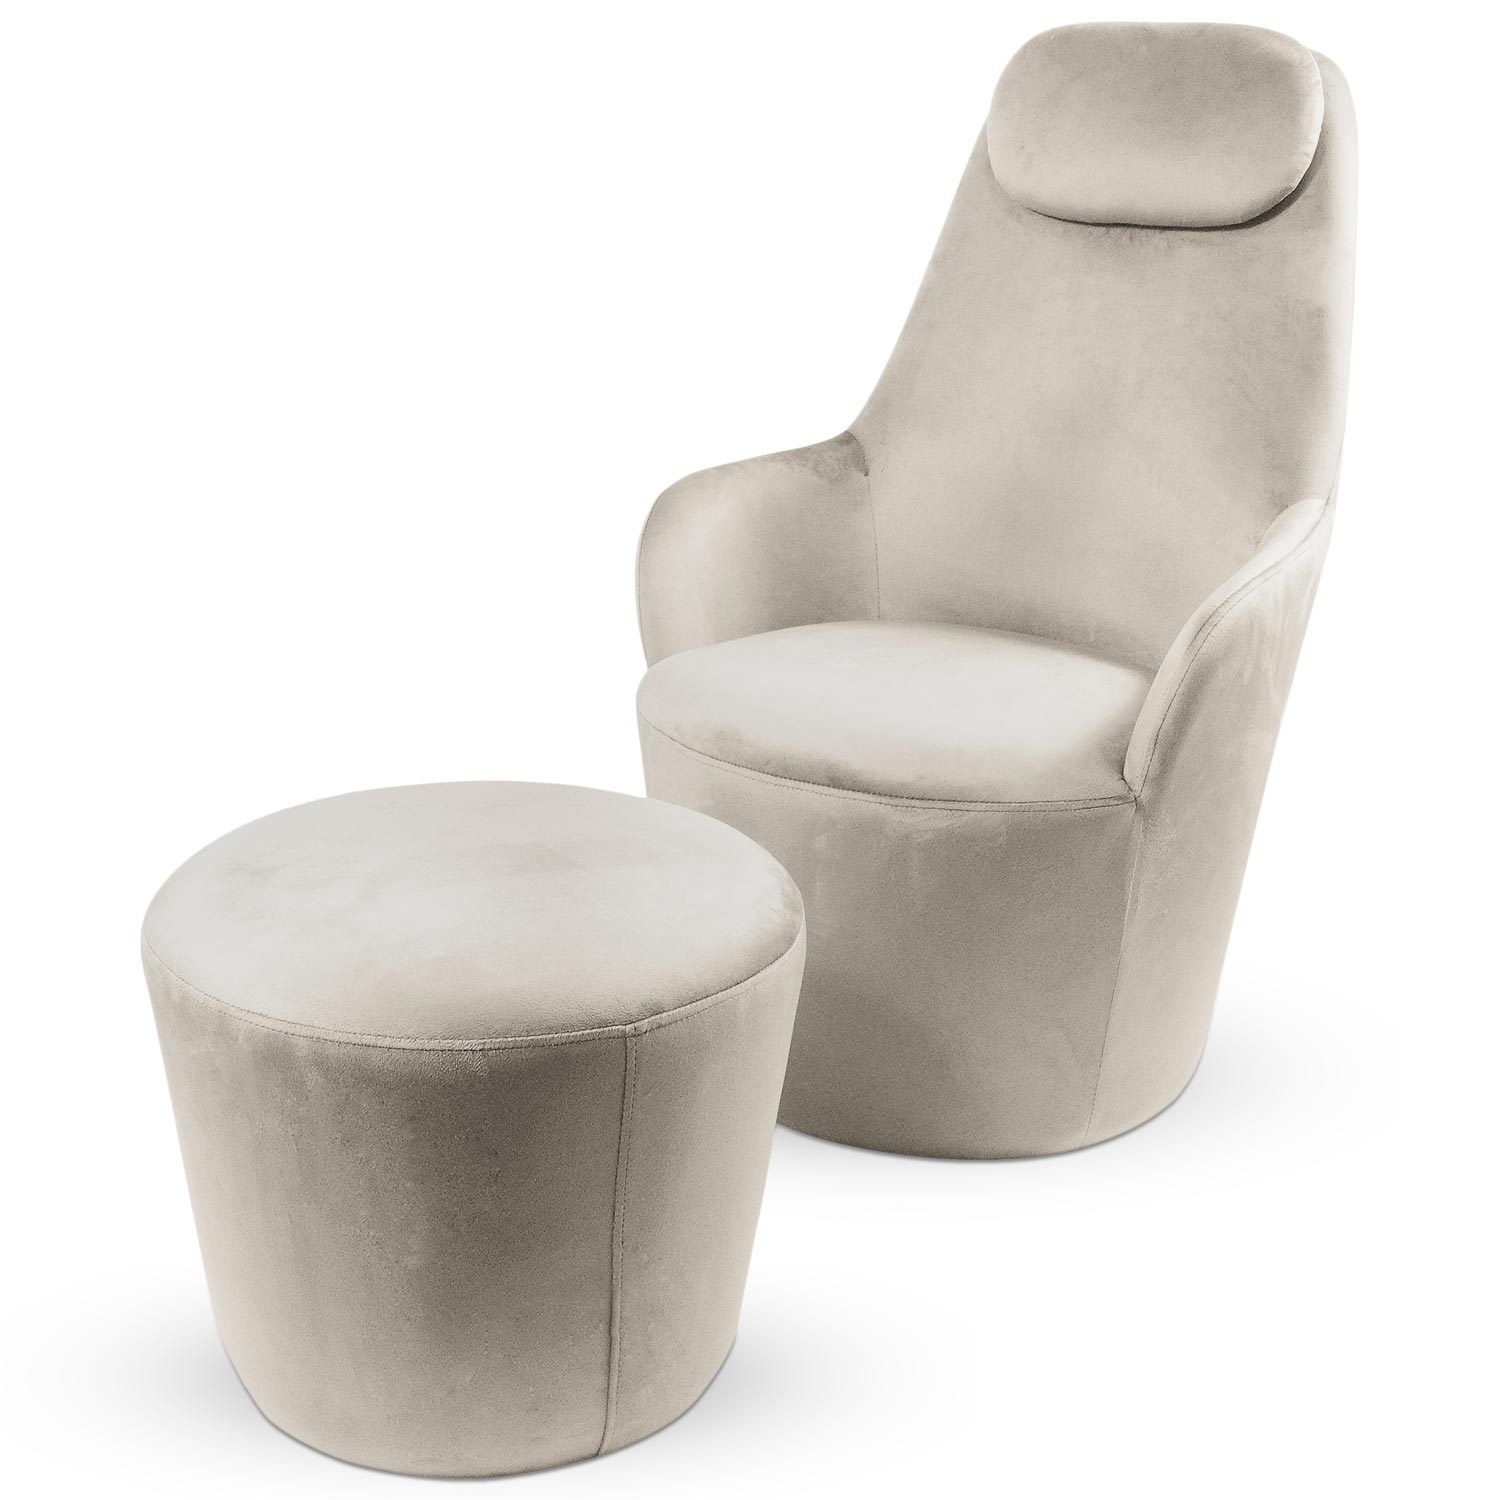 Fauteuil Dongal avec repose-pieds Velours Taupe